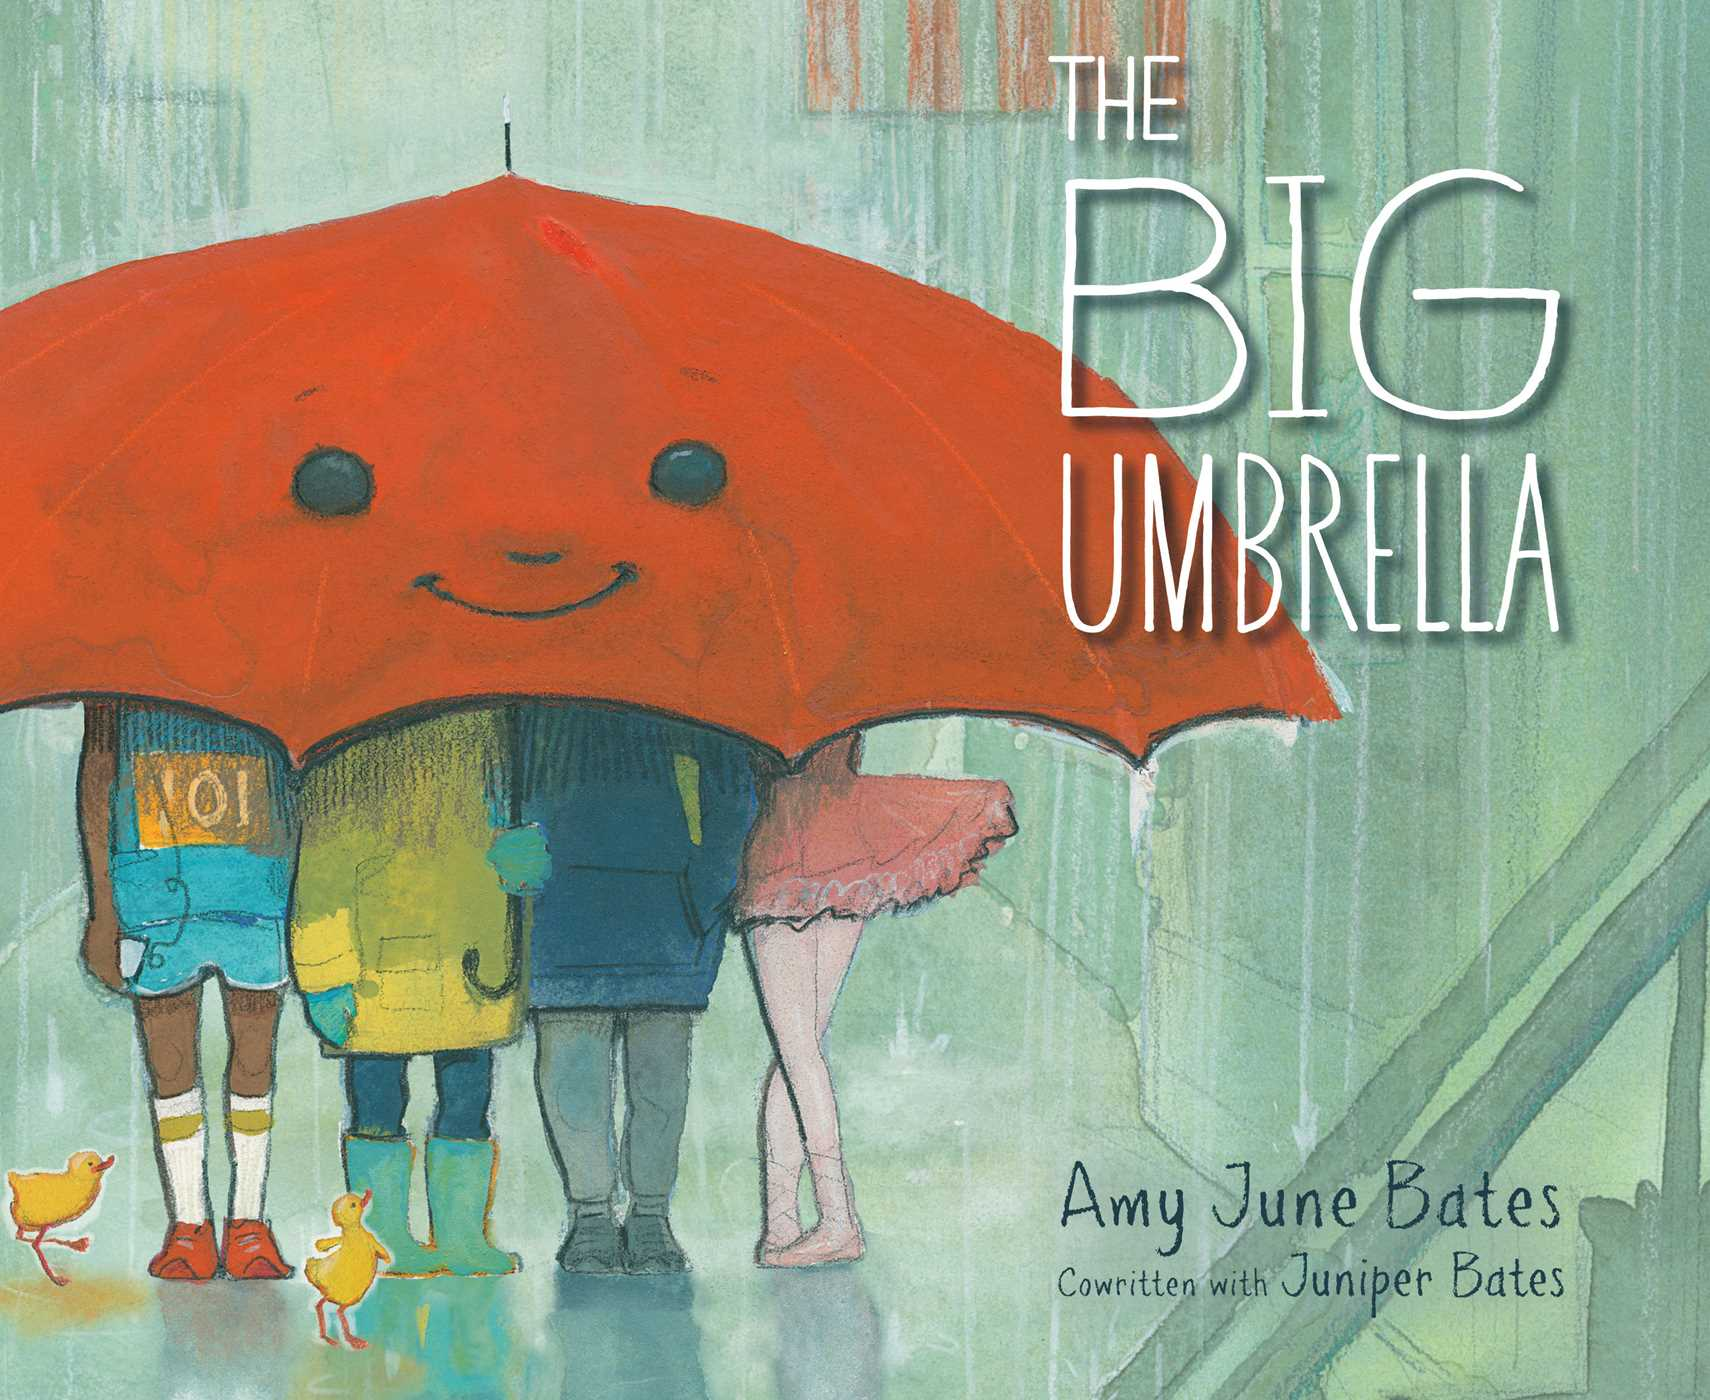 the-big-umbrella-9781534406582_hr.jpg